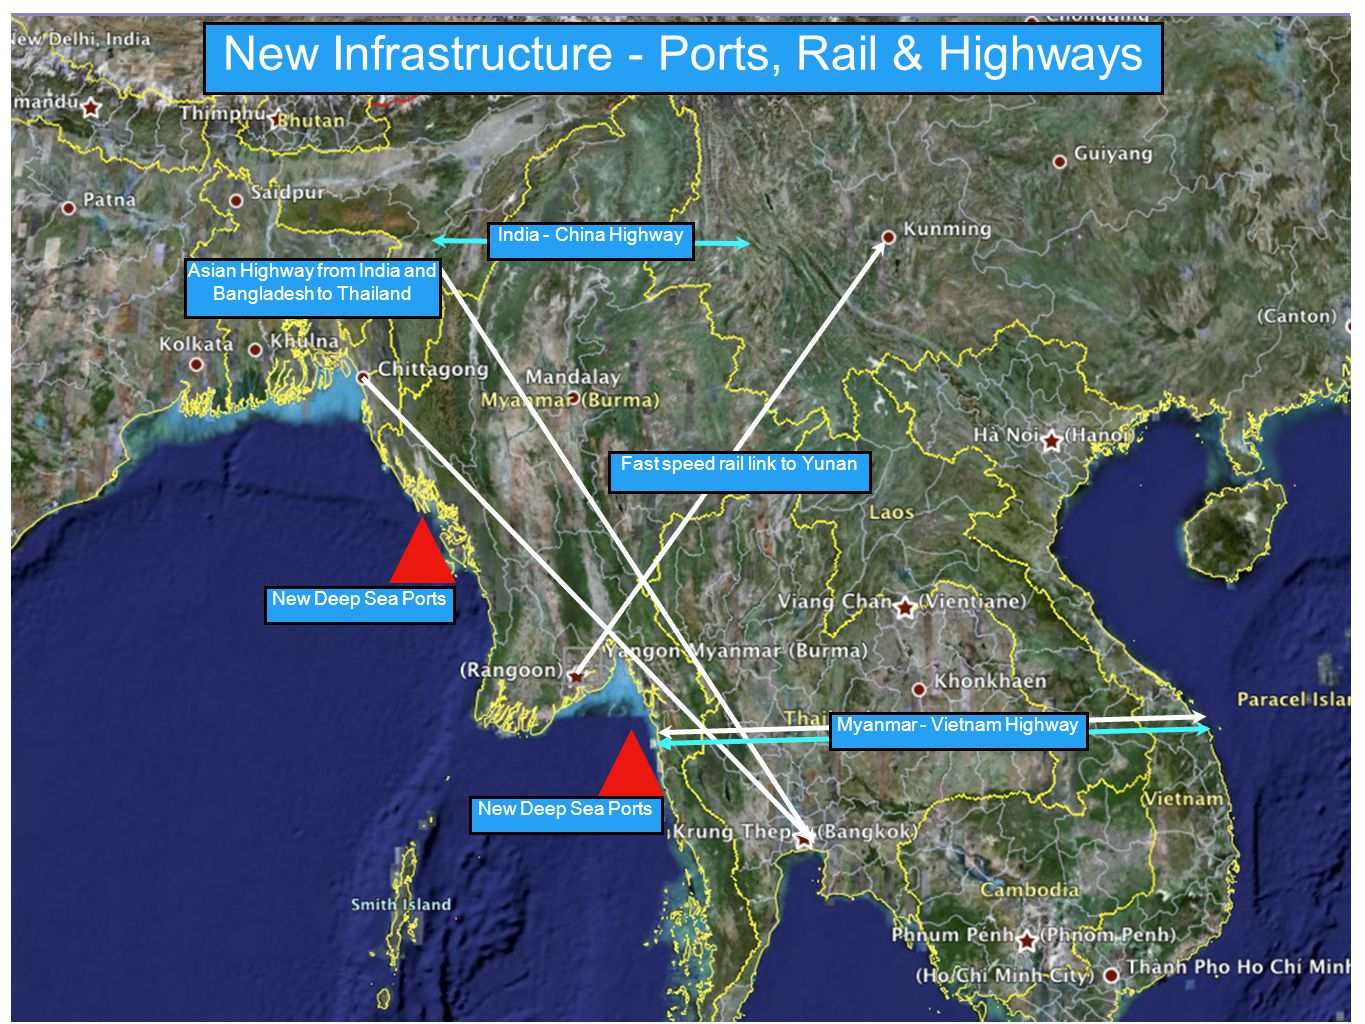 New Infrastructure - Ports, Rail & Highways India - China Highway Fast speed rail link to Yunan Asian Highway from India and Bangladesh to Thailand New Deep Sea Ports Myanmar - Vietnam Highway